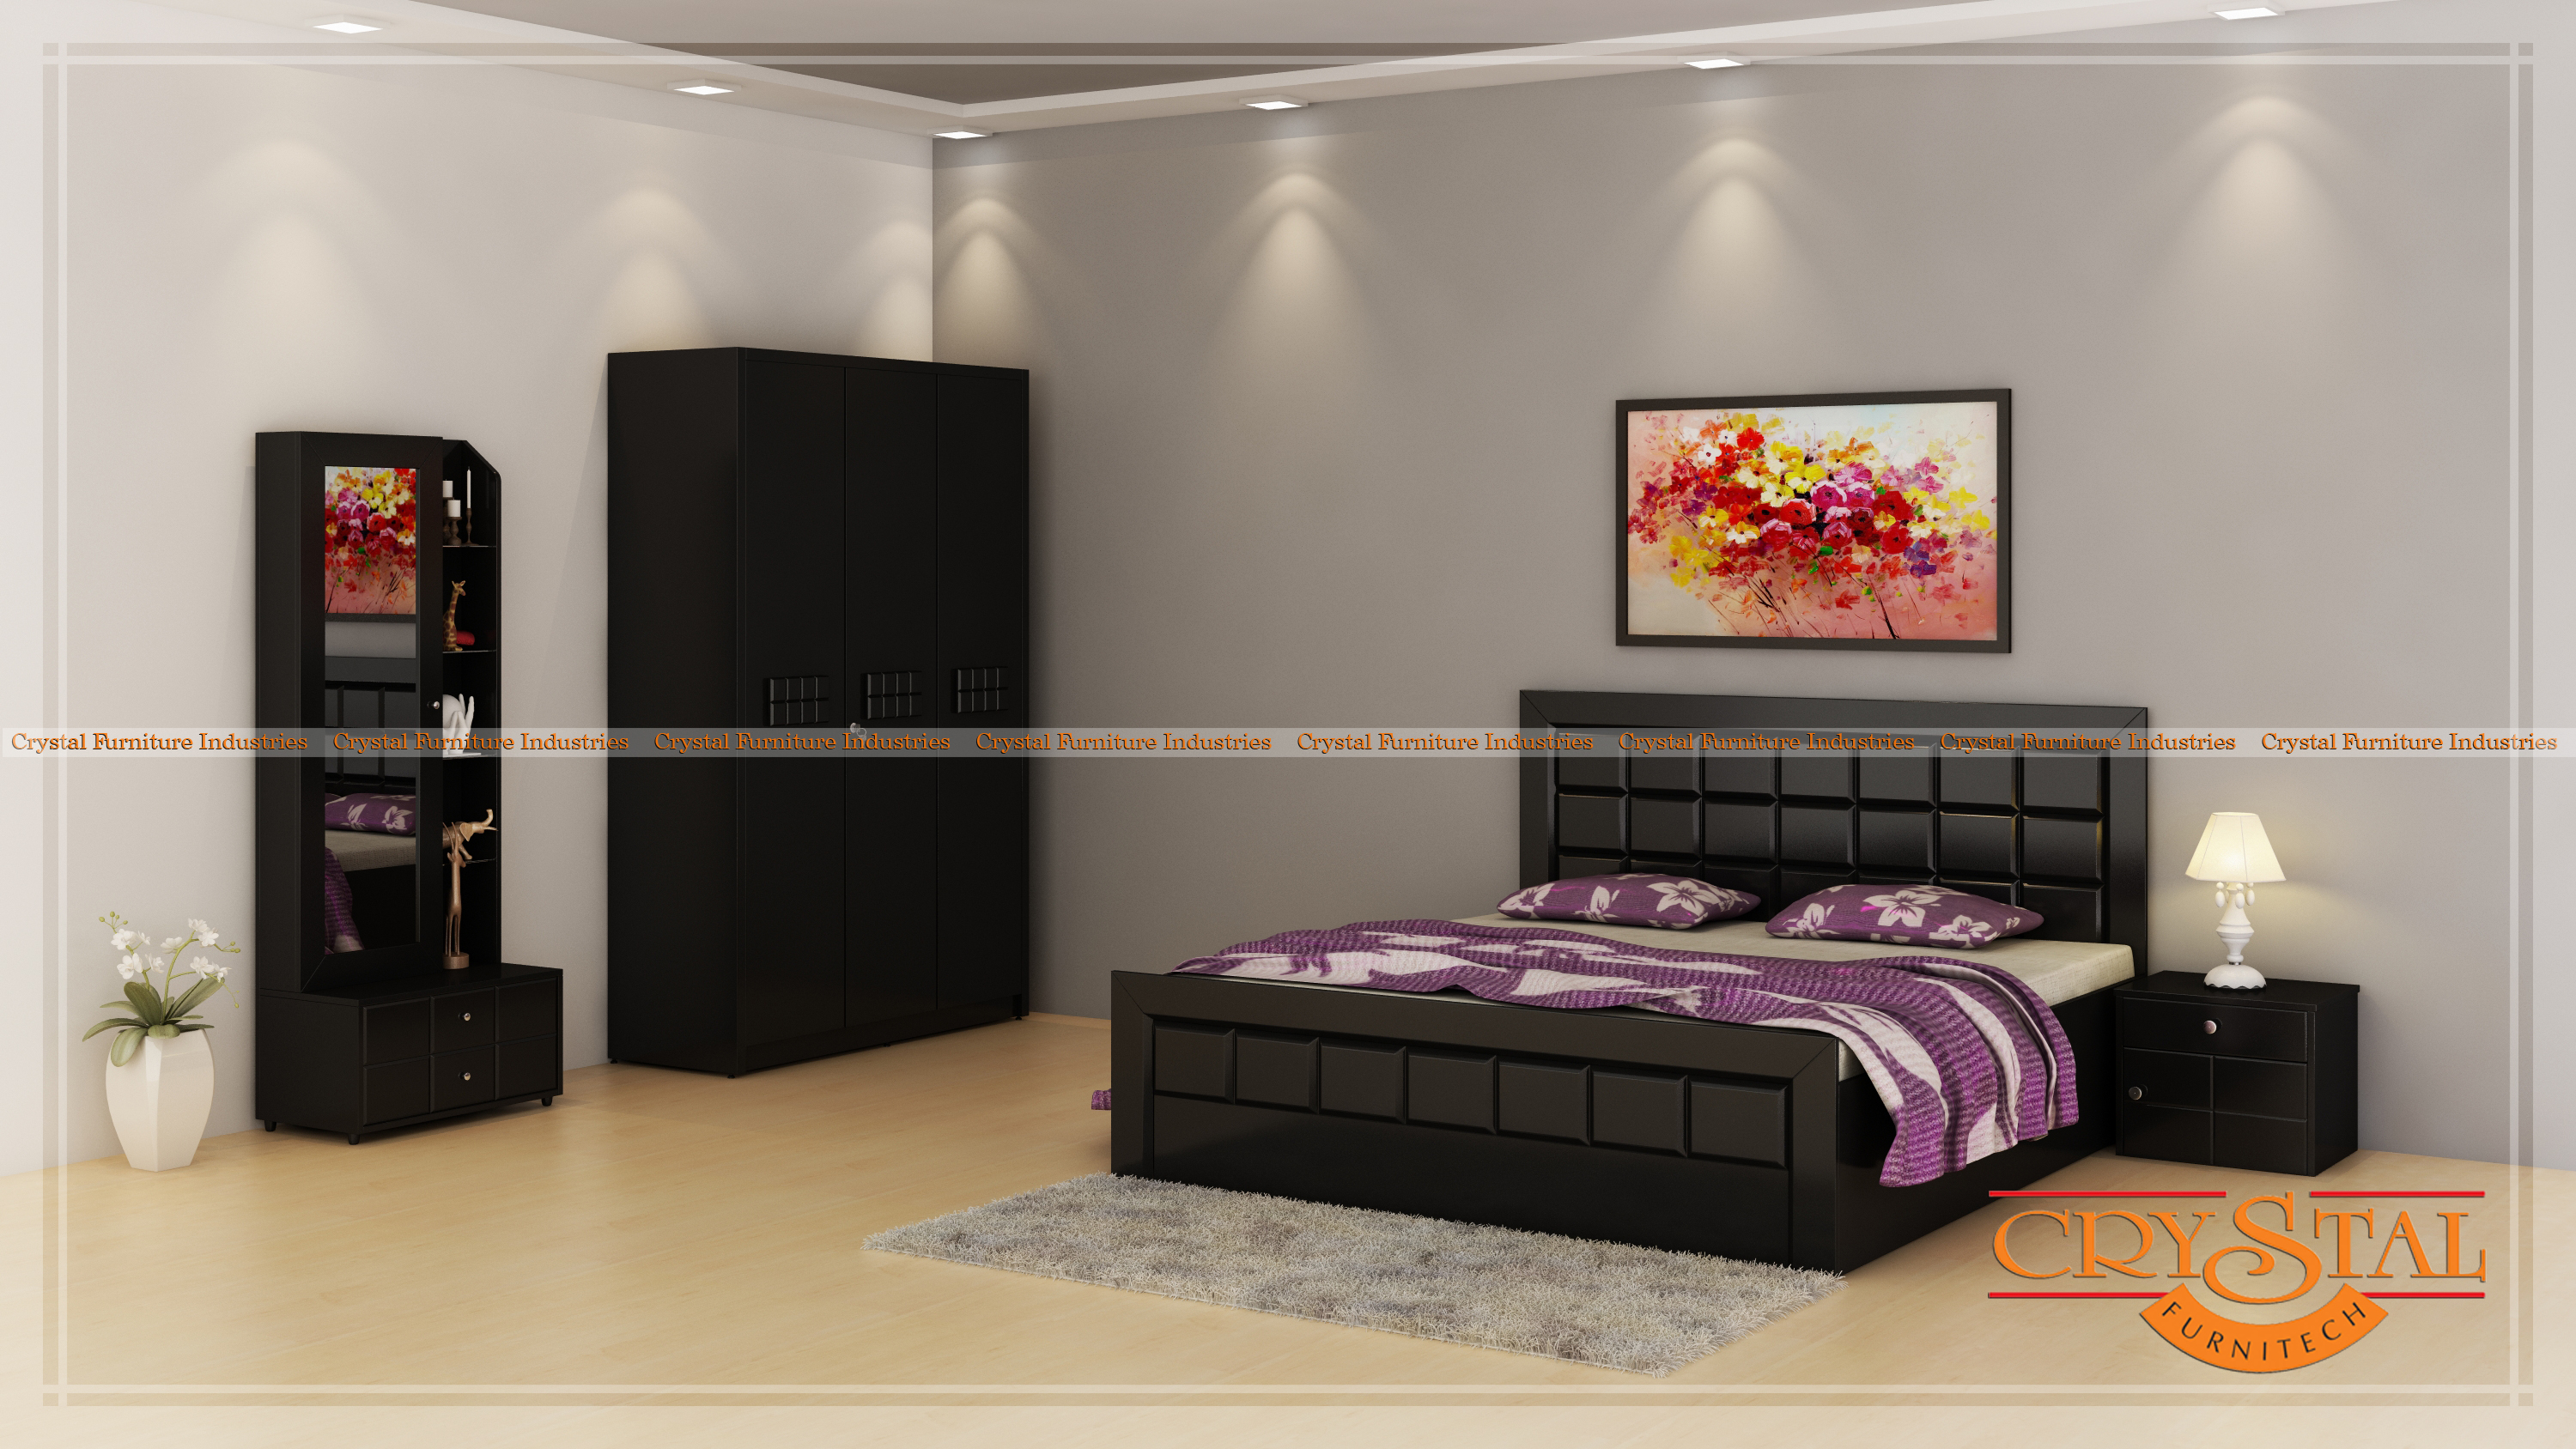 Modular Home Furniture Manufacturer in India